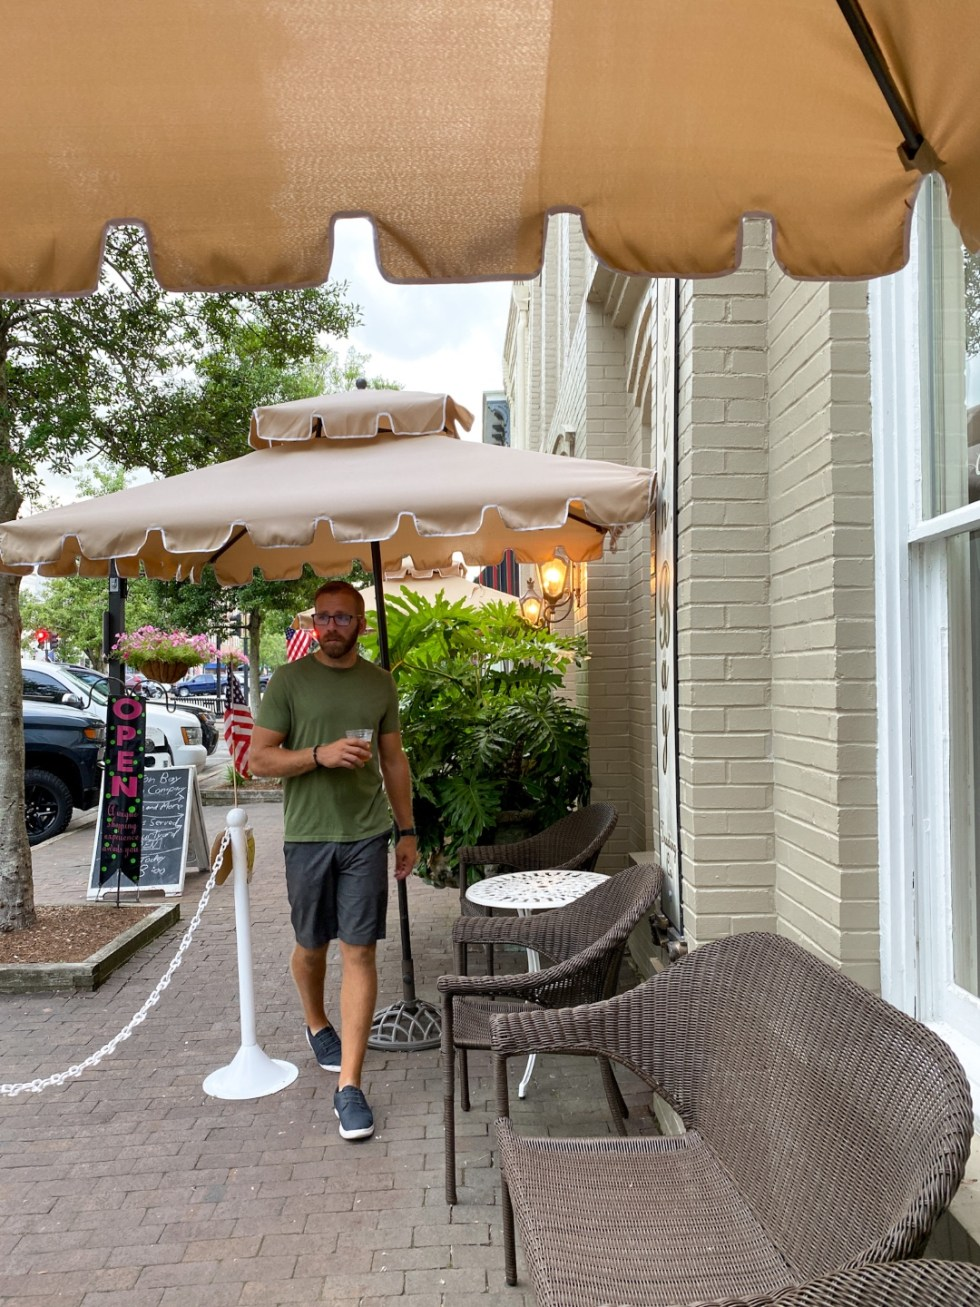 Top 10 Best Things to Do in Edenton, NC: A Complete Travel Guide - I'm Fixin' To - @imfixintoblog | Edenton Travel Guide by popular NC travel guid, I'm Fixin' To: image of a man standing next to the Edenton Bay Trading Company building.